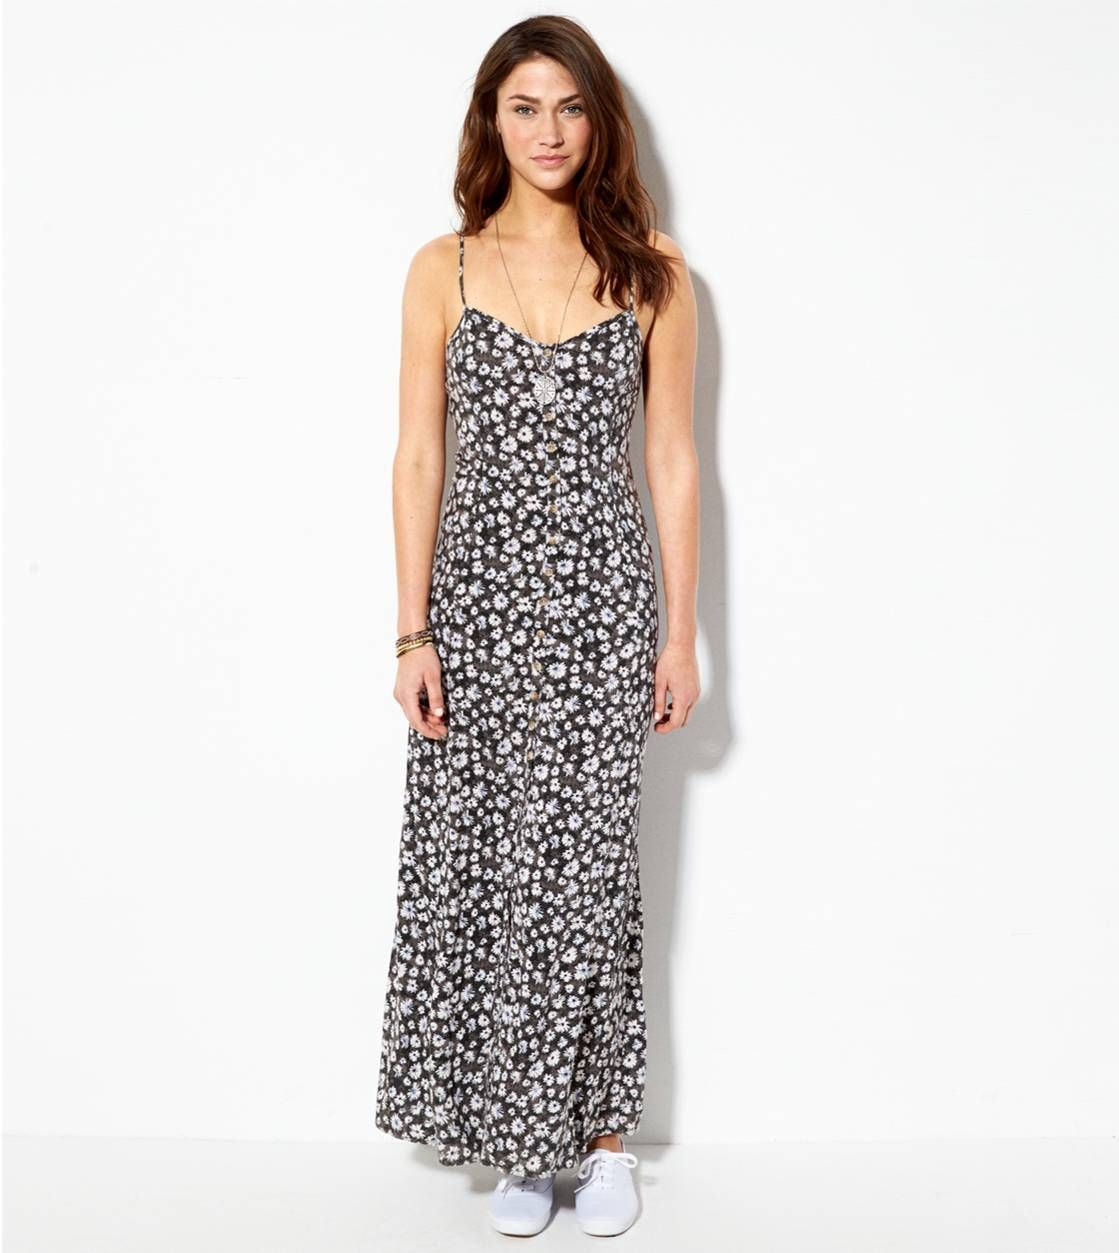 Floral Ae Printed Maxi Sundress Eastwoodpinpals Dresses